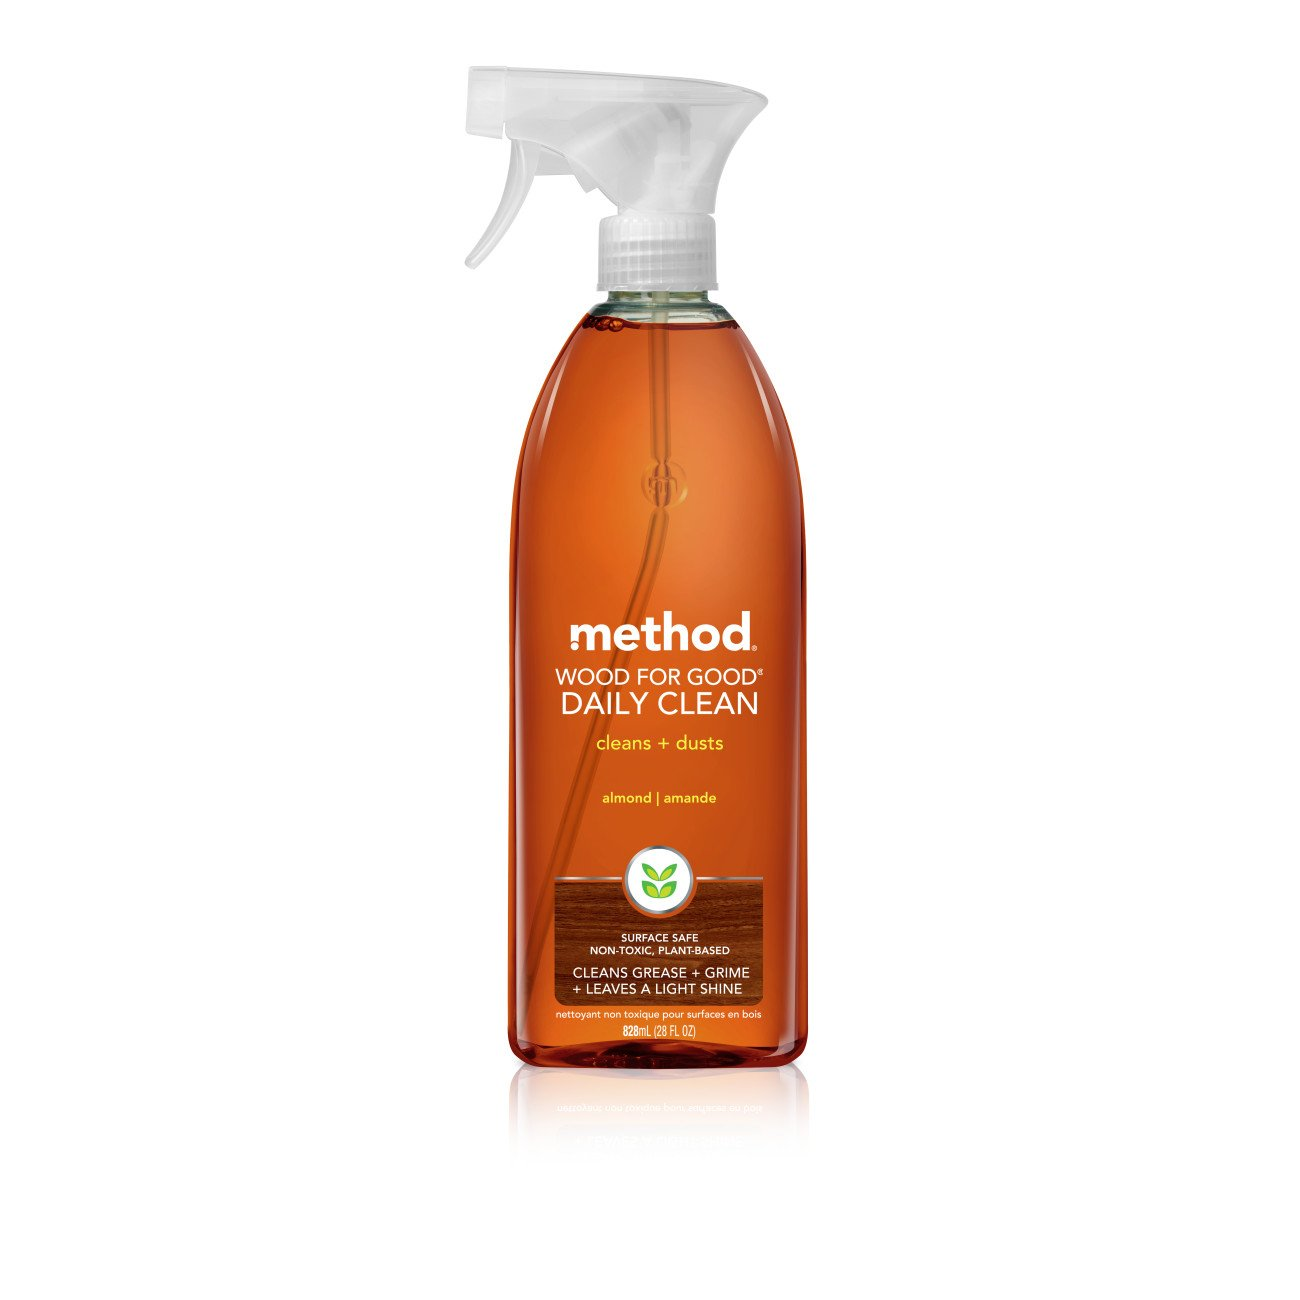 Method Wood for Good Daily Wood Cleaner, 28 Fl. Oz (Pack of 8) by Method